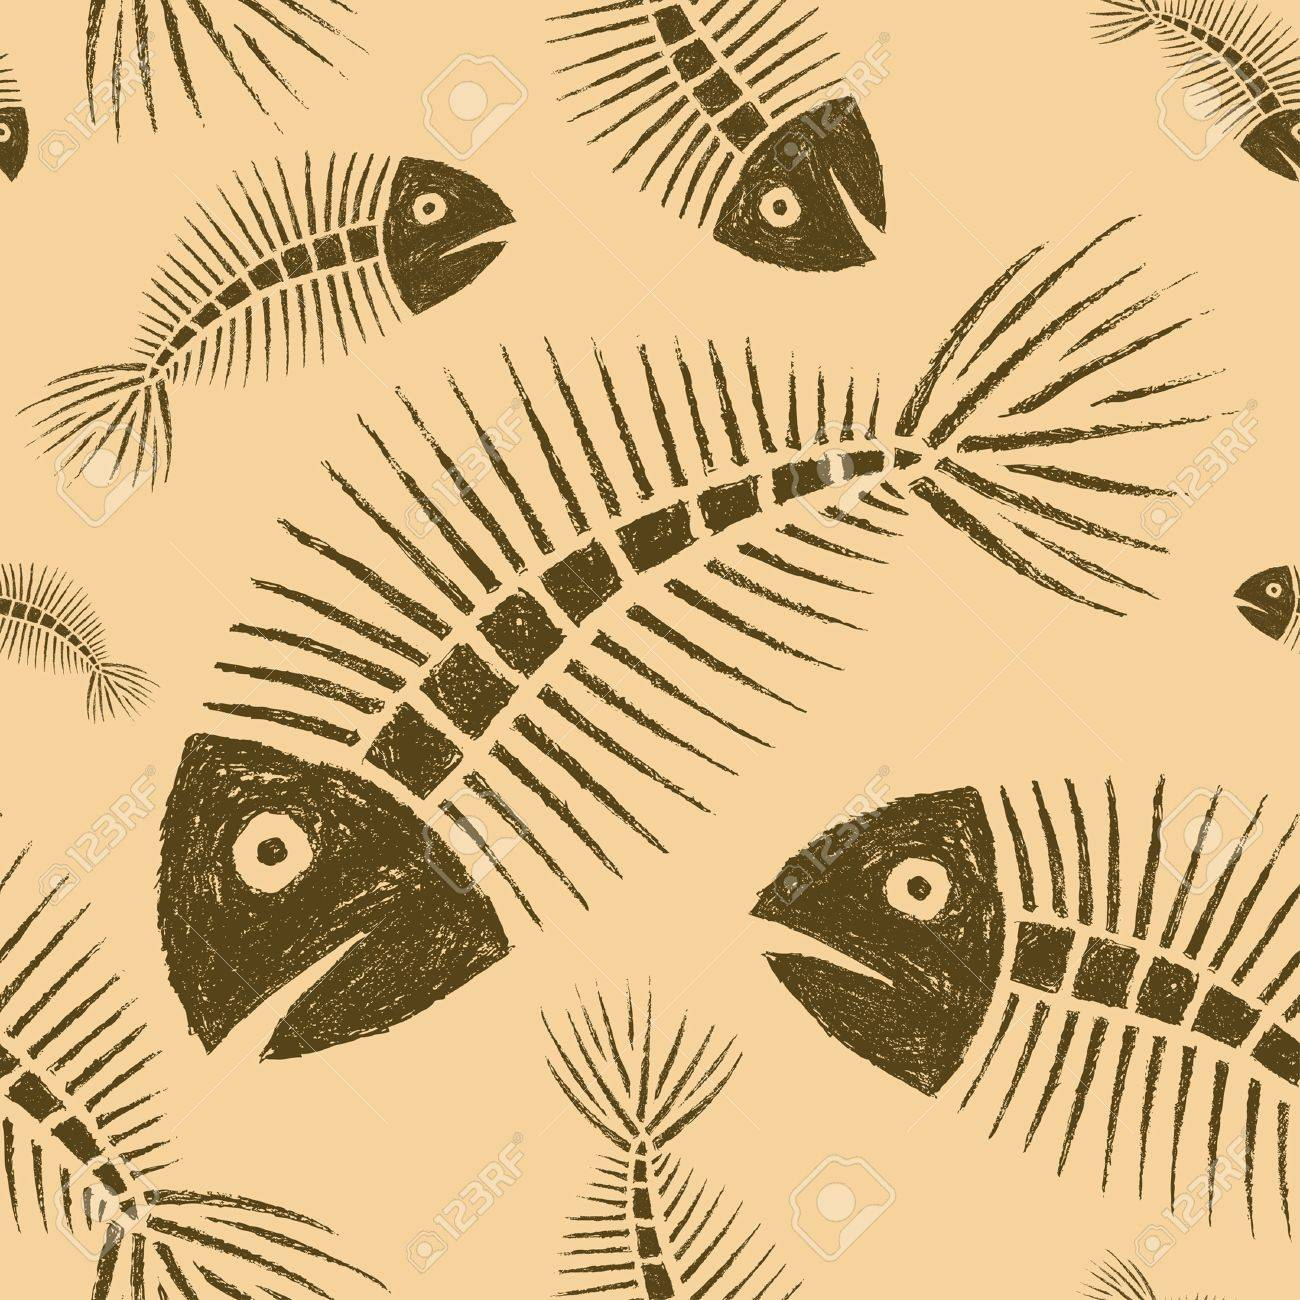 Hand Drawn Fish Skeleton Seamless Tile Stock Vector - 11038928